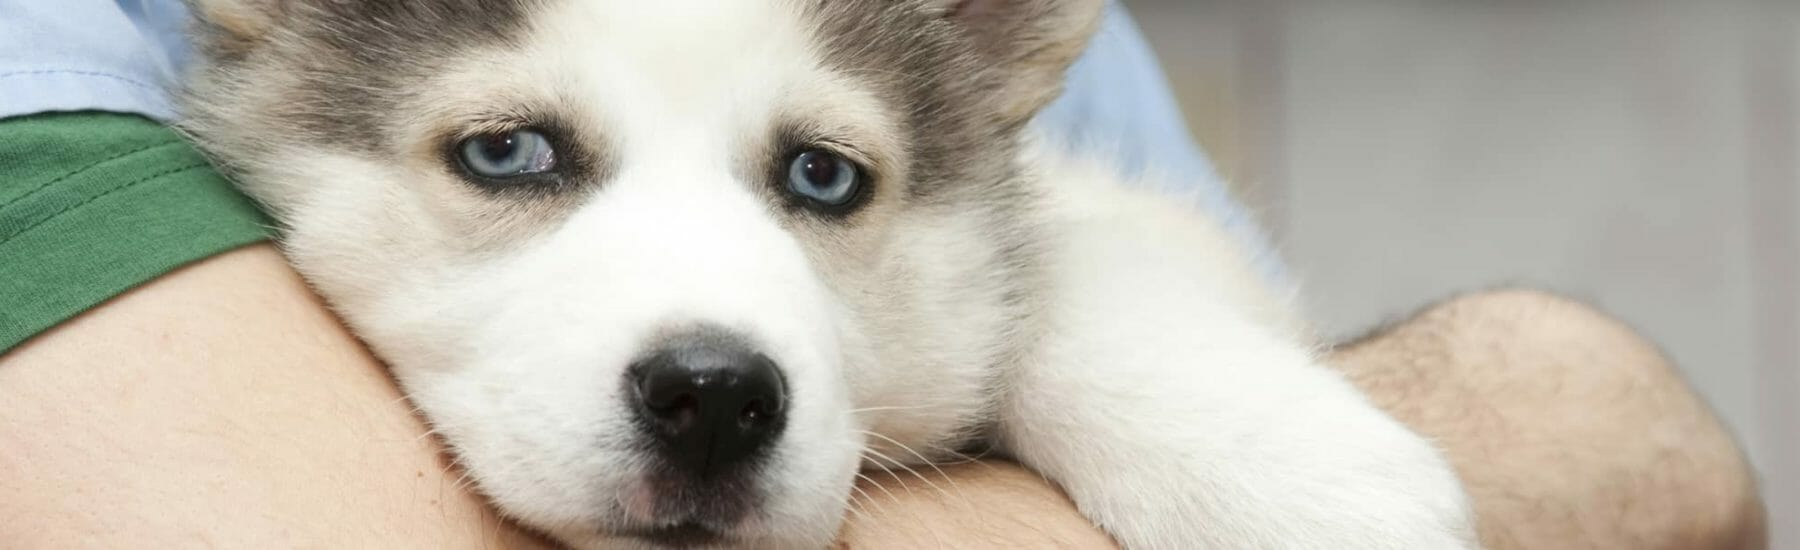 Heartworm Testing for Dogs